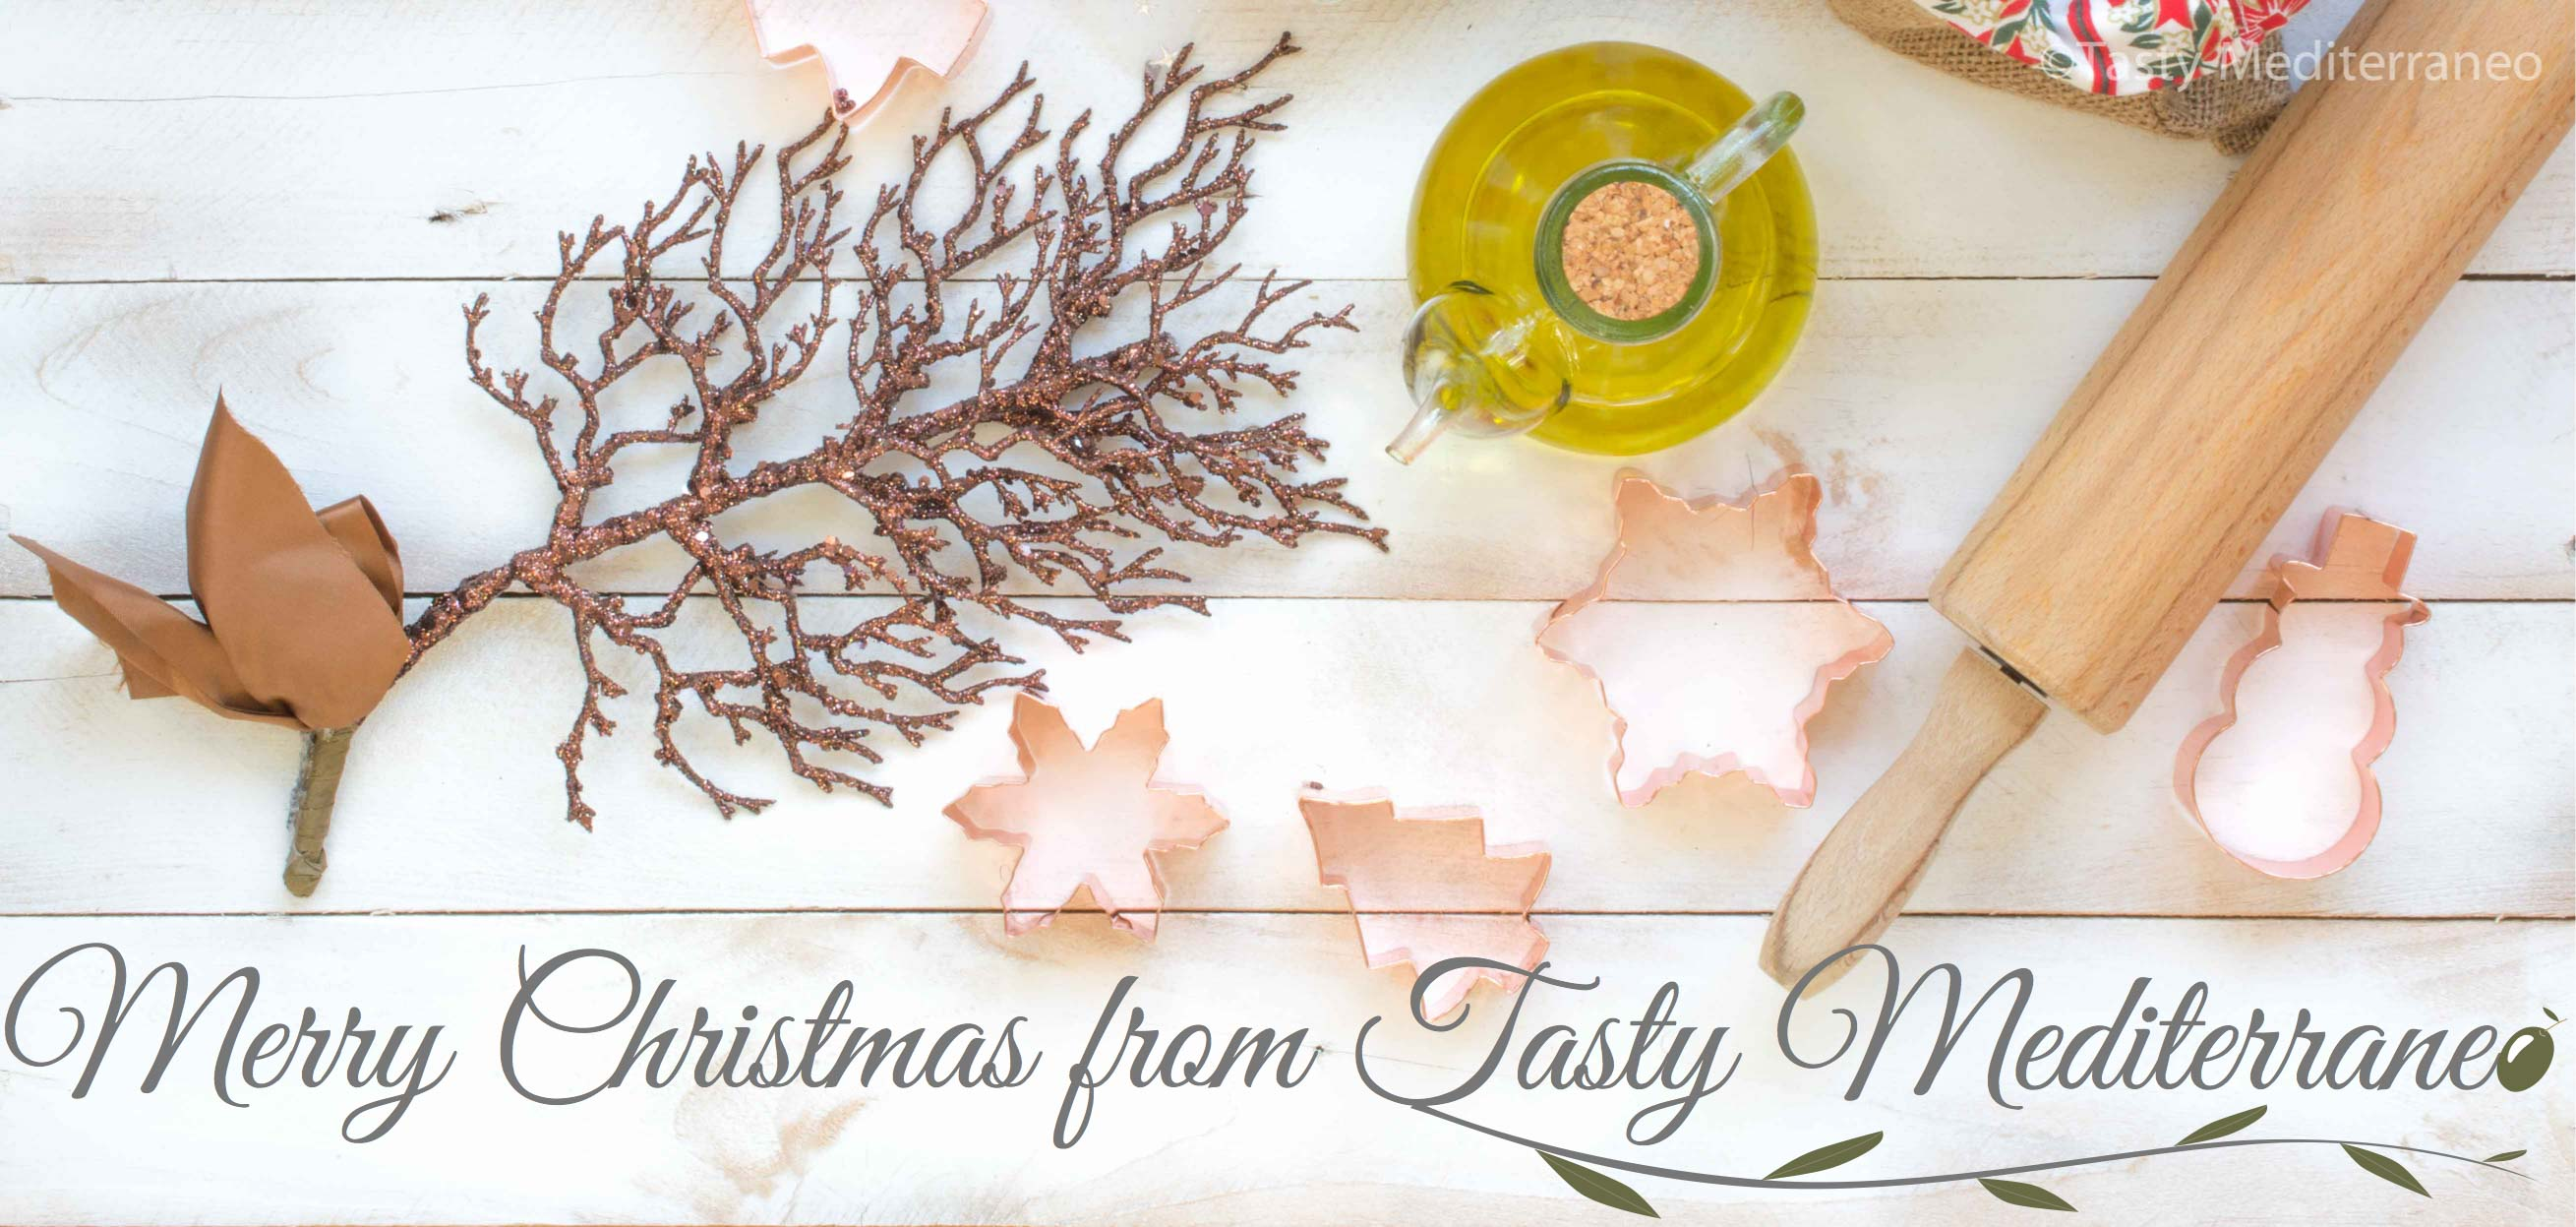 tasty-mediterraneo-vegan-christmas-recipes